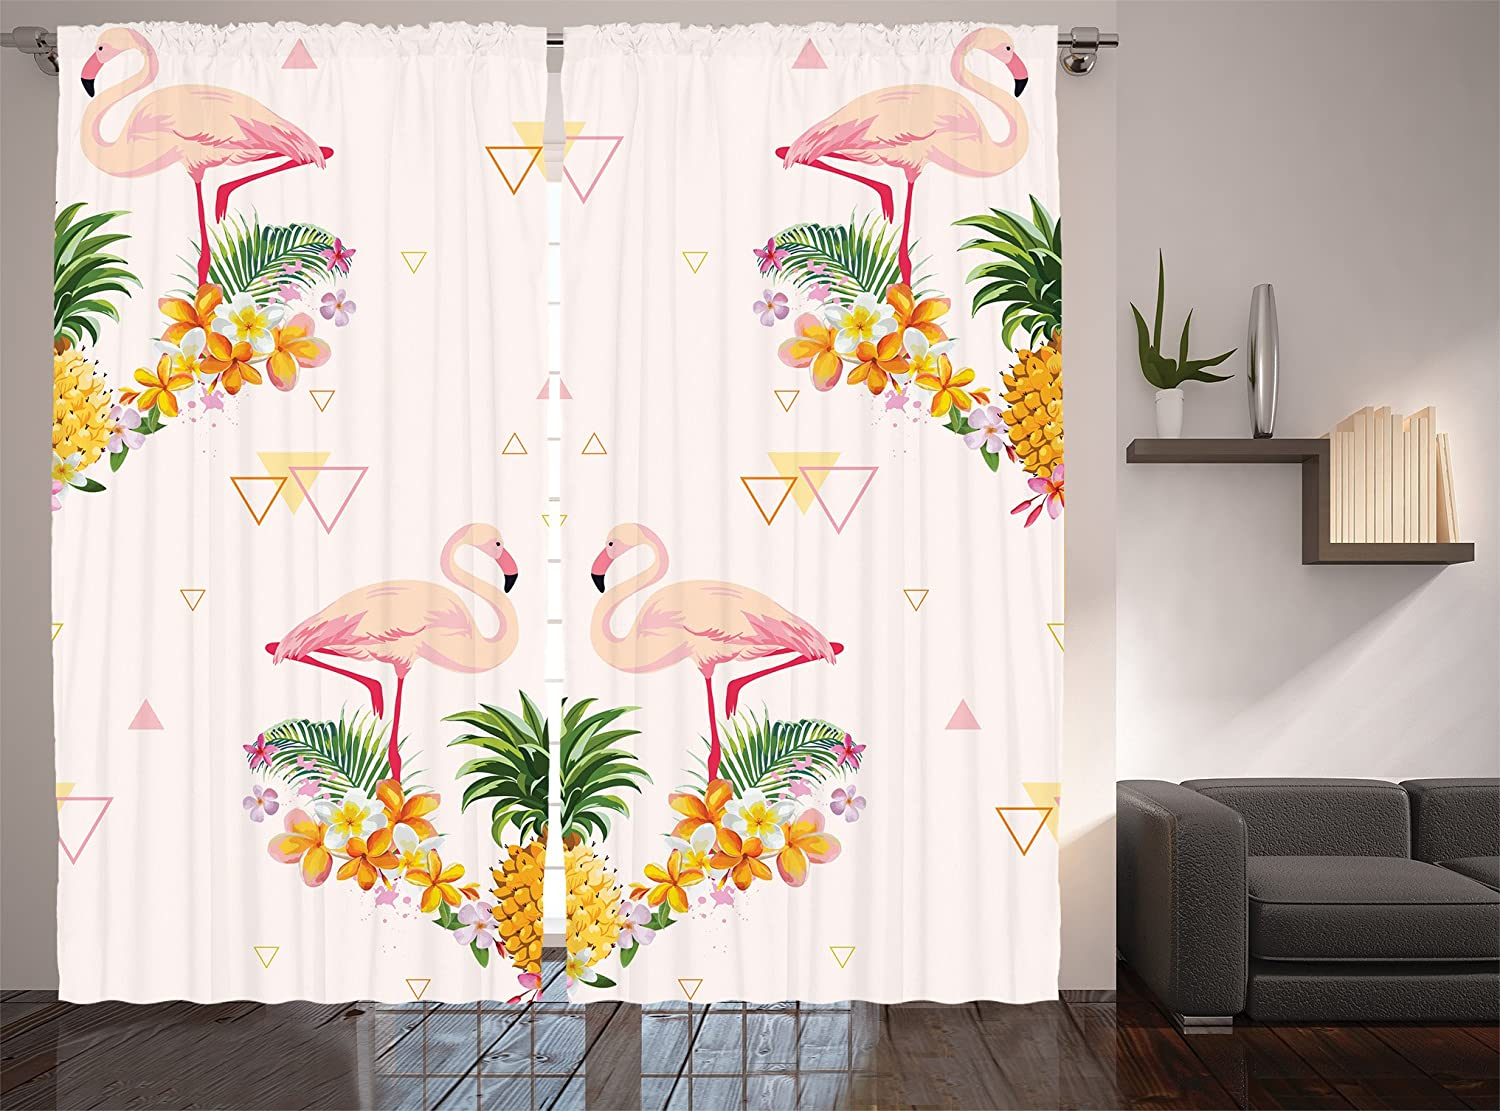 White Red Home Decor Concert Theatre Stage Drapes Silver Gold Cafe Curtains for Dining Room Bedroom Living Kids and Teen Rooms Modern Art Pictures Two Panels Set 108 X 84 Inches Long Curtains